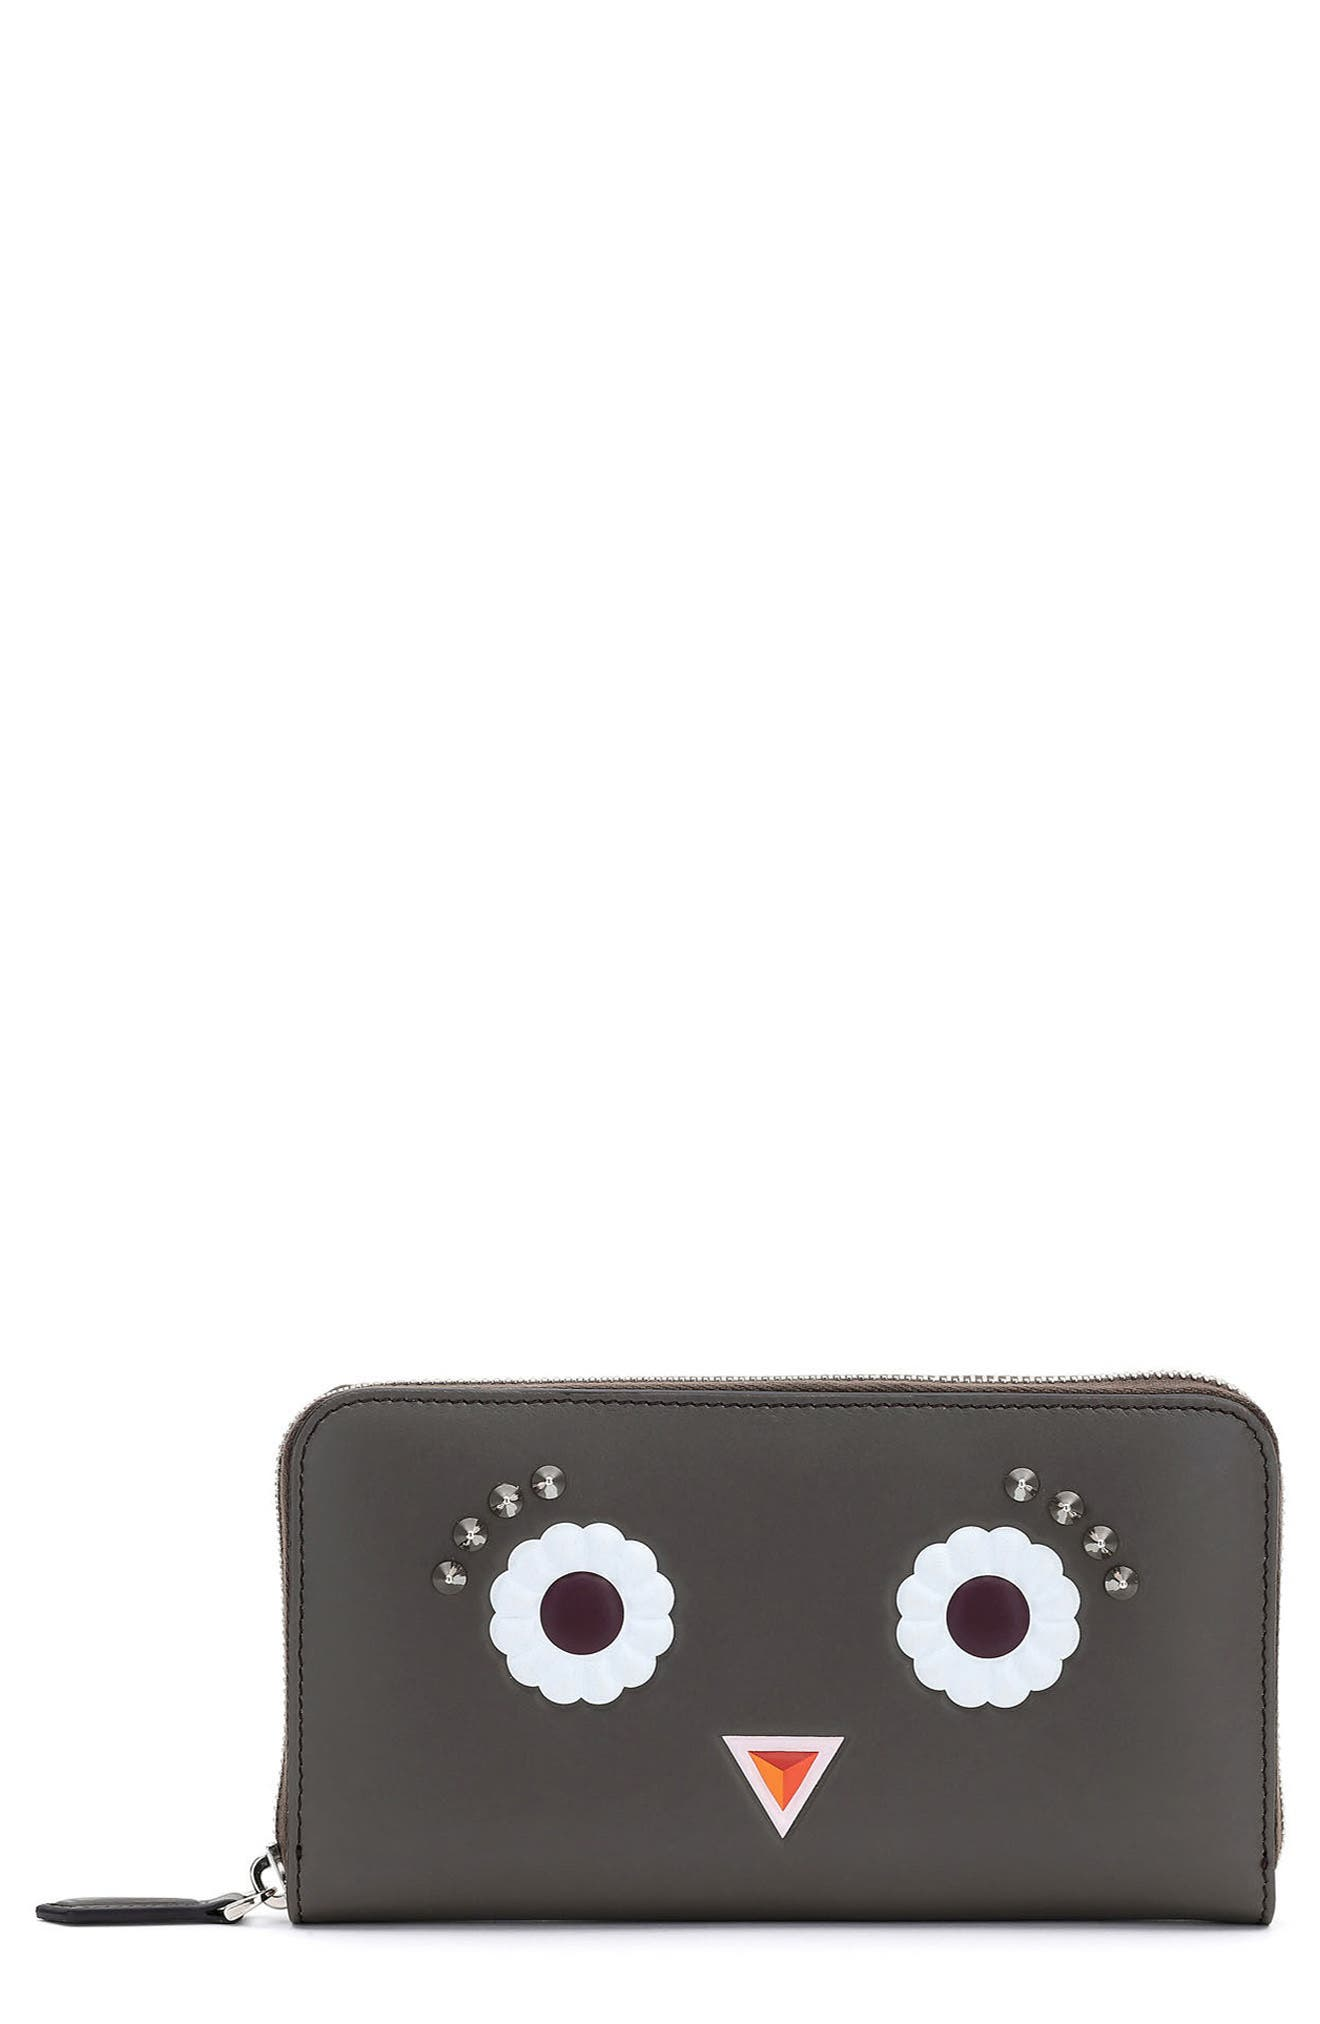 Faces Leather Zip Around Wallet,                             Main thumbnail 1, color,                             021